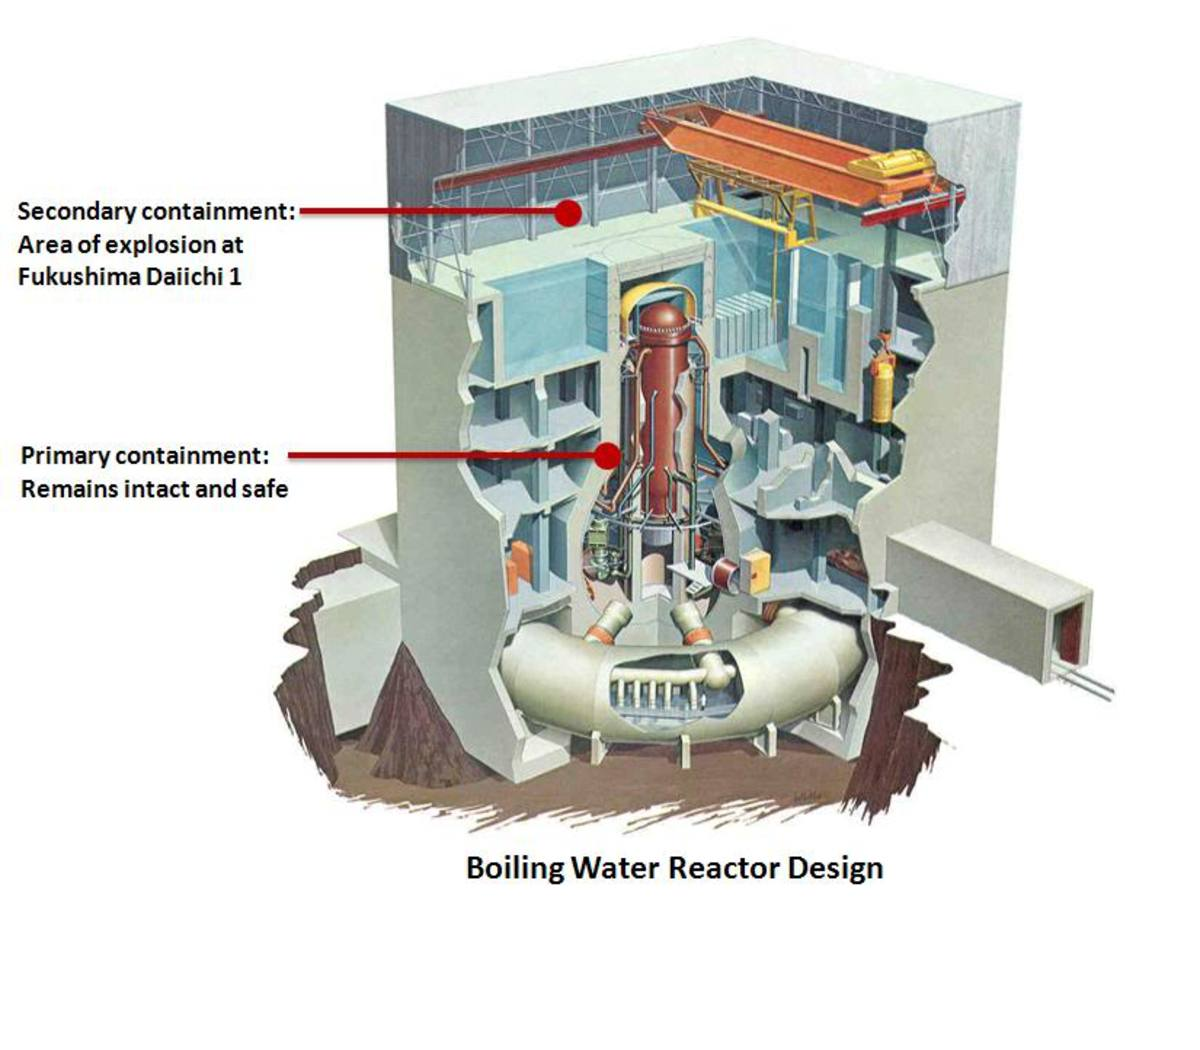 Diagrams of the boiling water reactor (Brook).